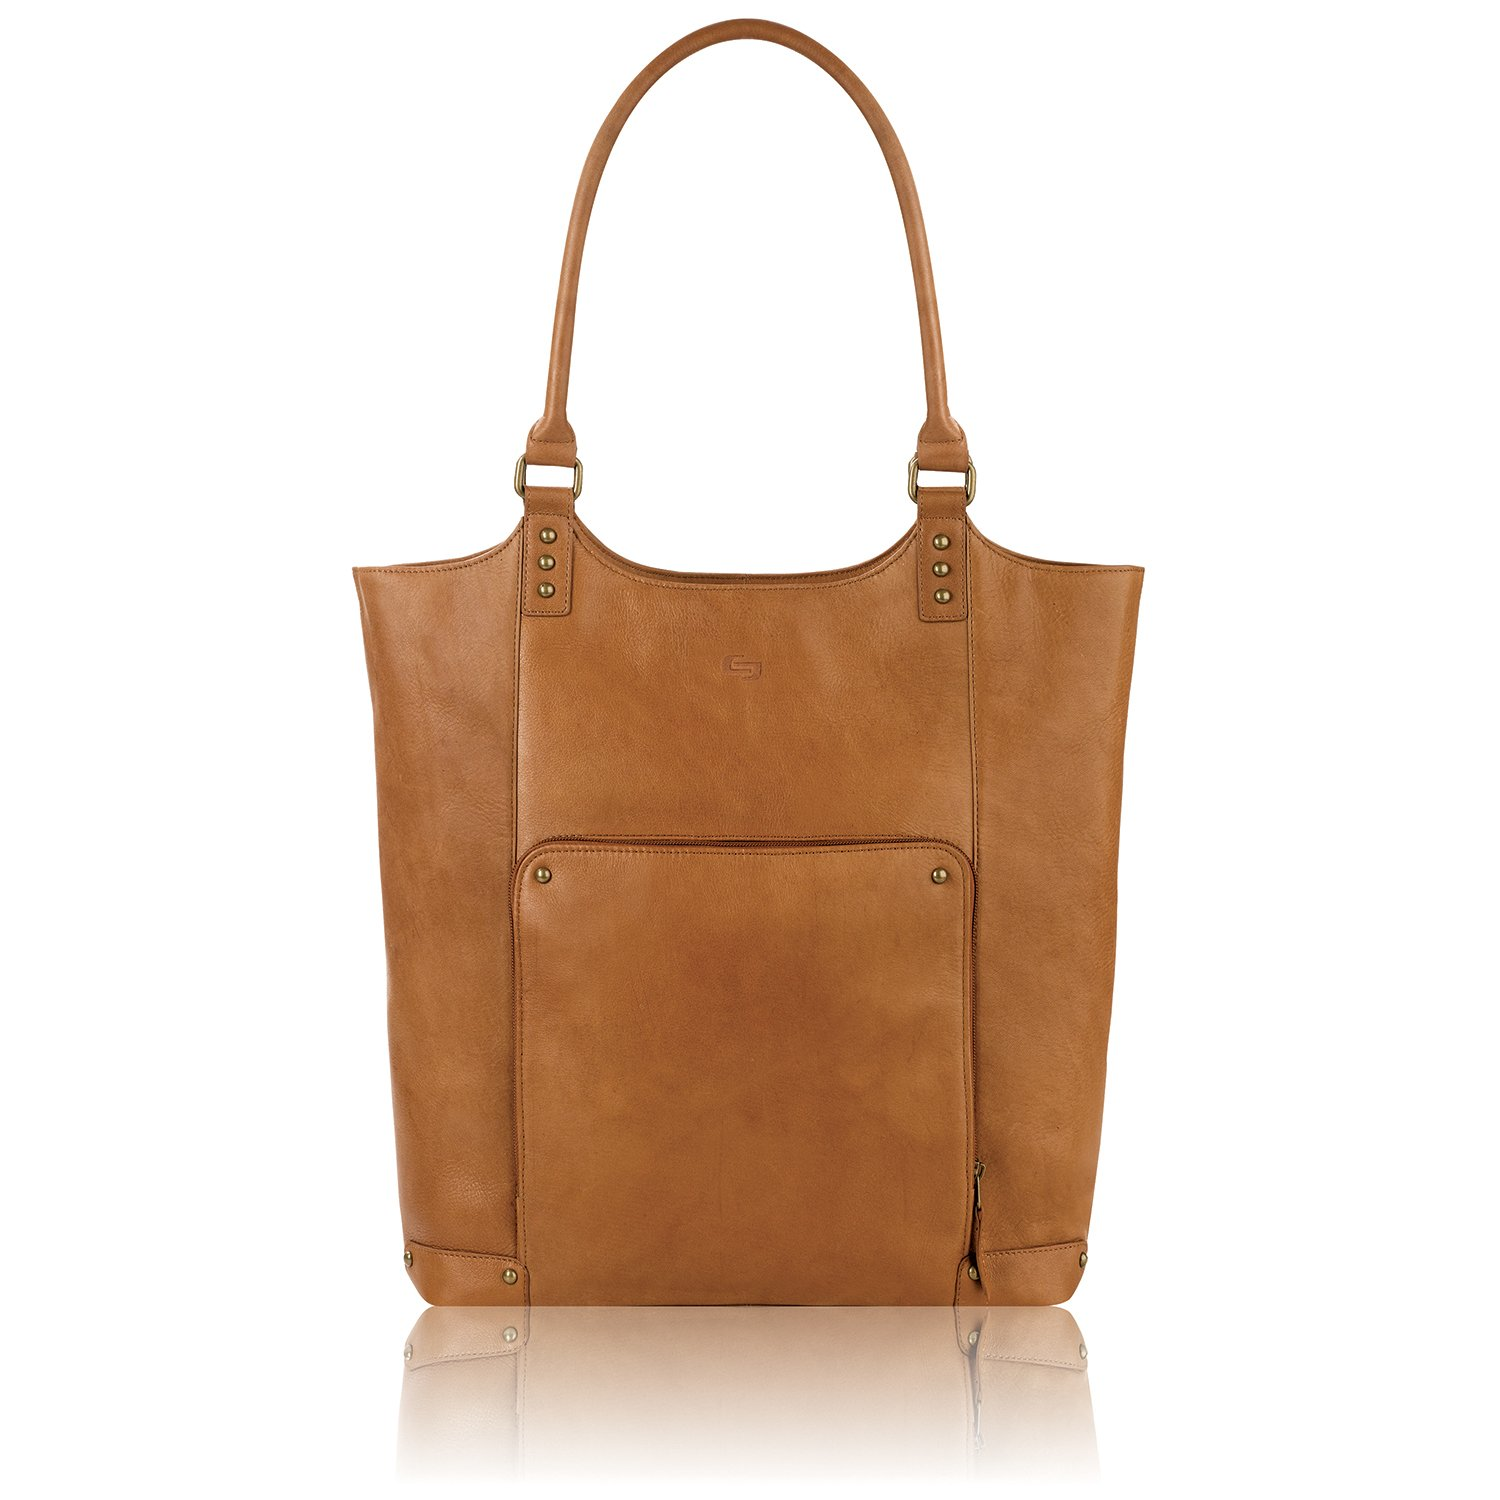 Solo Vestry 15.6 Inch Laptop Bucket Tote, Tan by SOLO (Image #1)